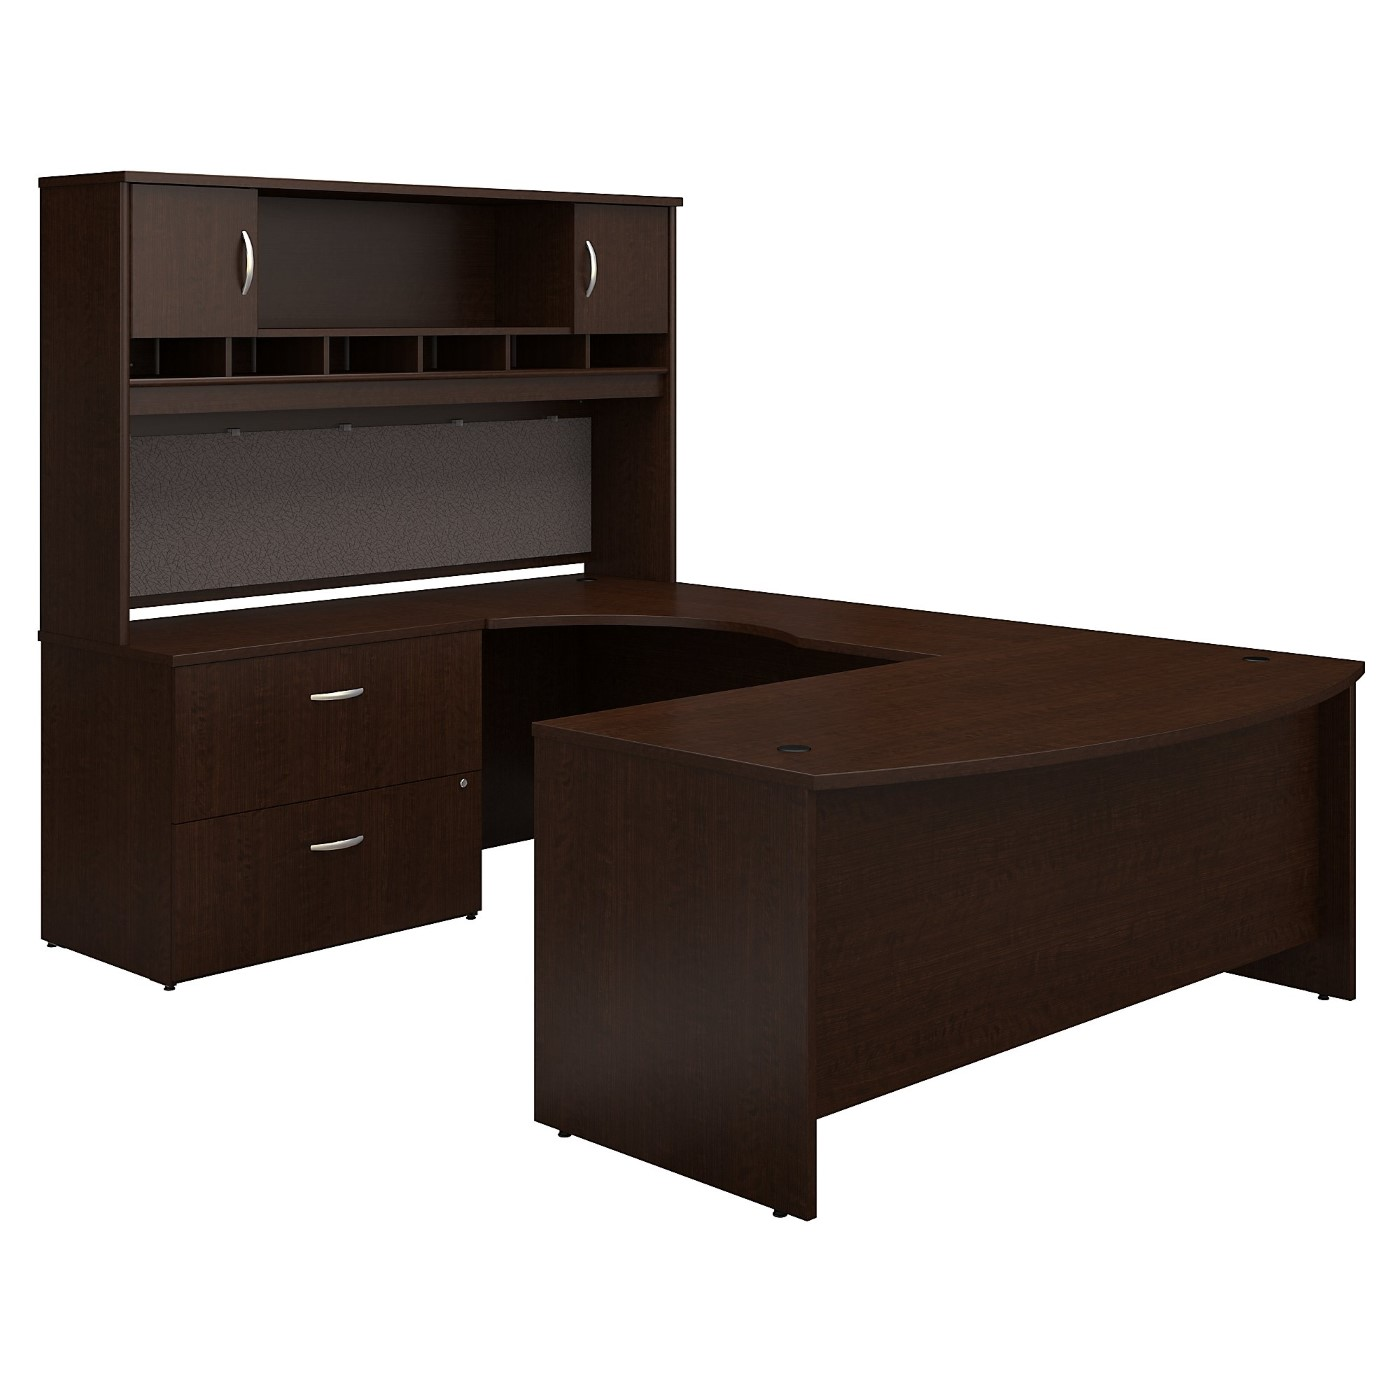 BUSH BUSINESS FURNITURE SERIES C 72W LEFT HANDED BOW FRONT U SHAPED DESK WITH HUTCH AND STORAGE. FREE SHIPPING SALE DEDUCT 10% MORE ENTER '10percent' IN COUPON CODE BOX WHILE CHECKING OUT.